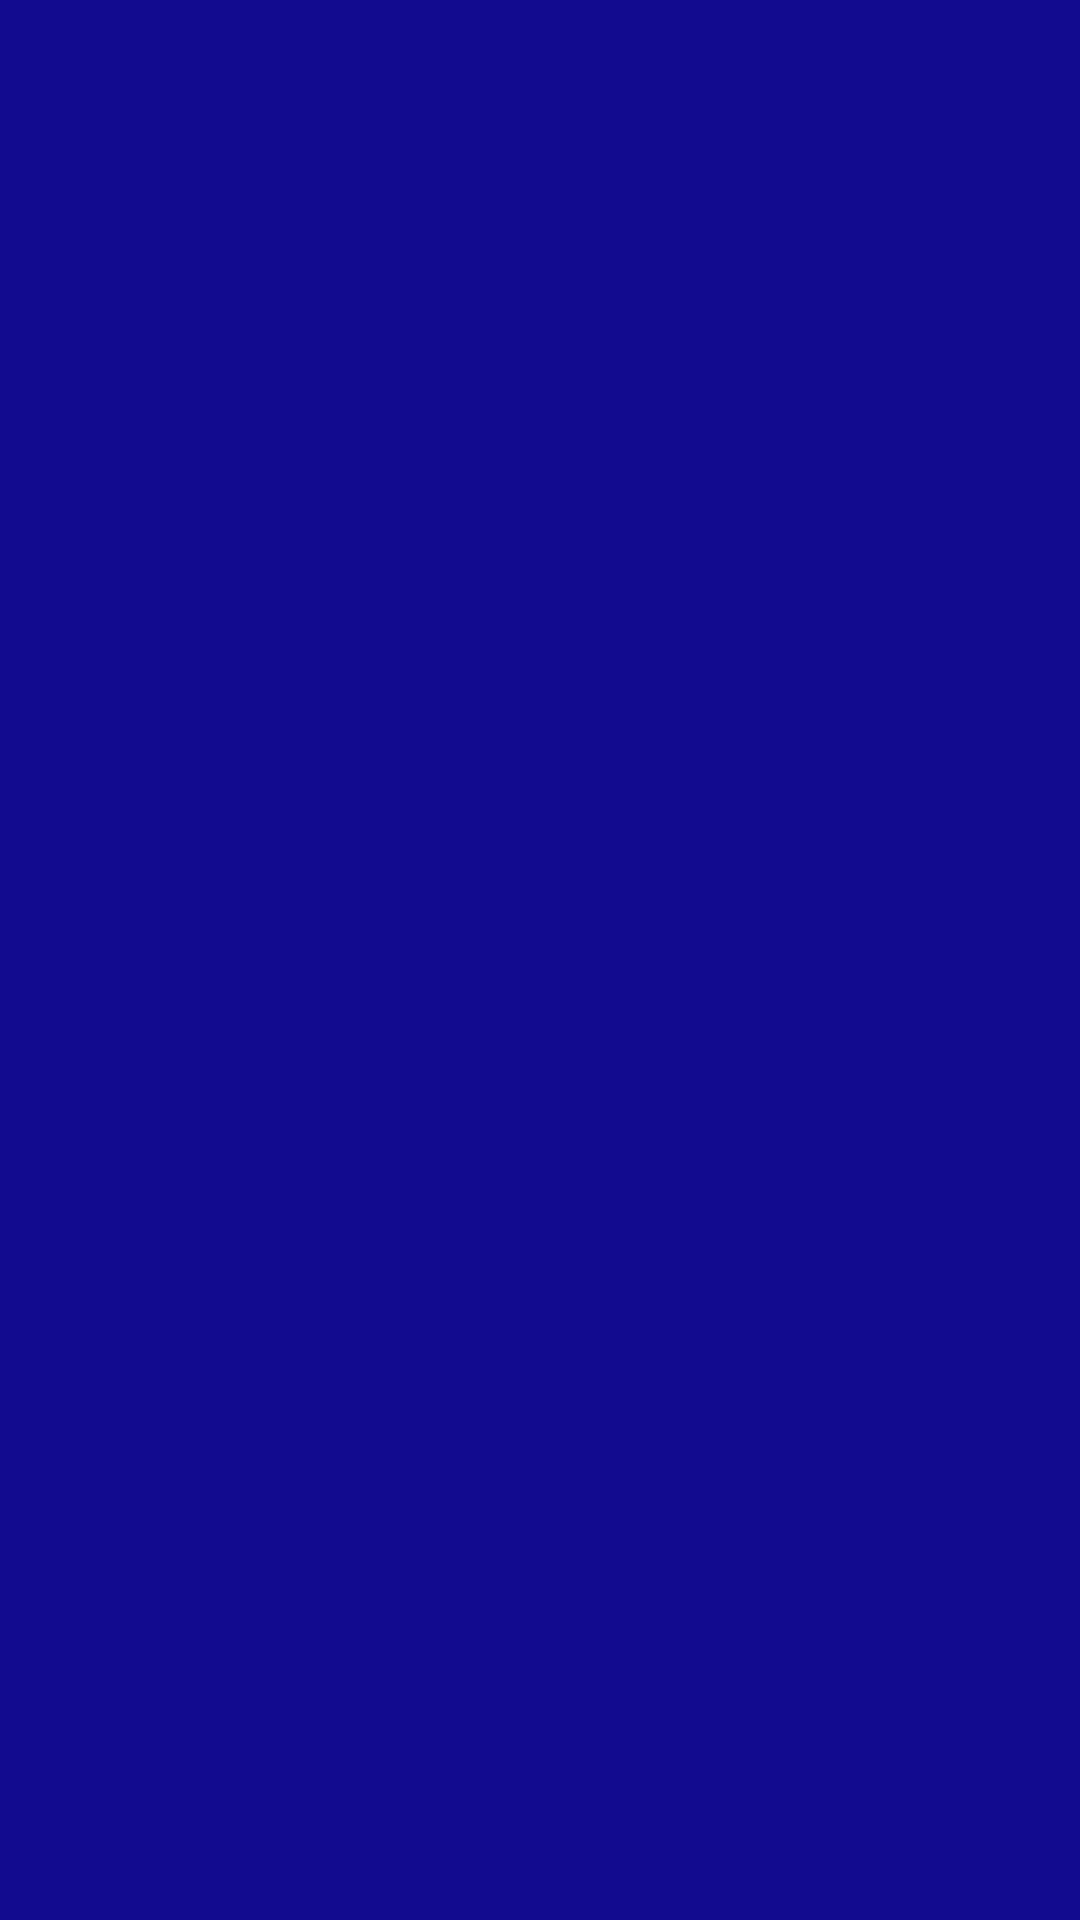 1080x1920 Ultramarine Solid Color Background 1080x1920